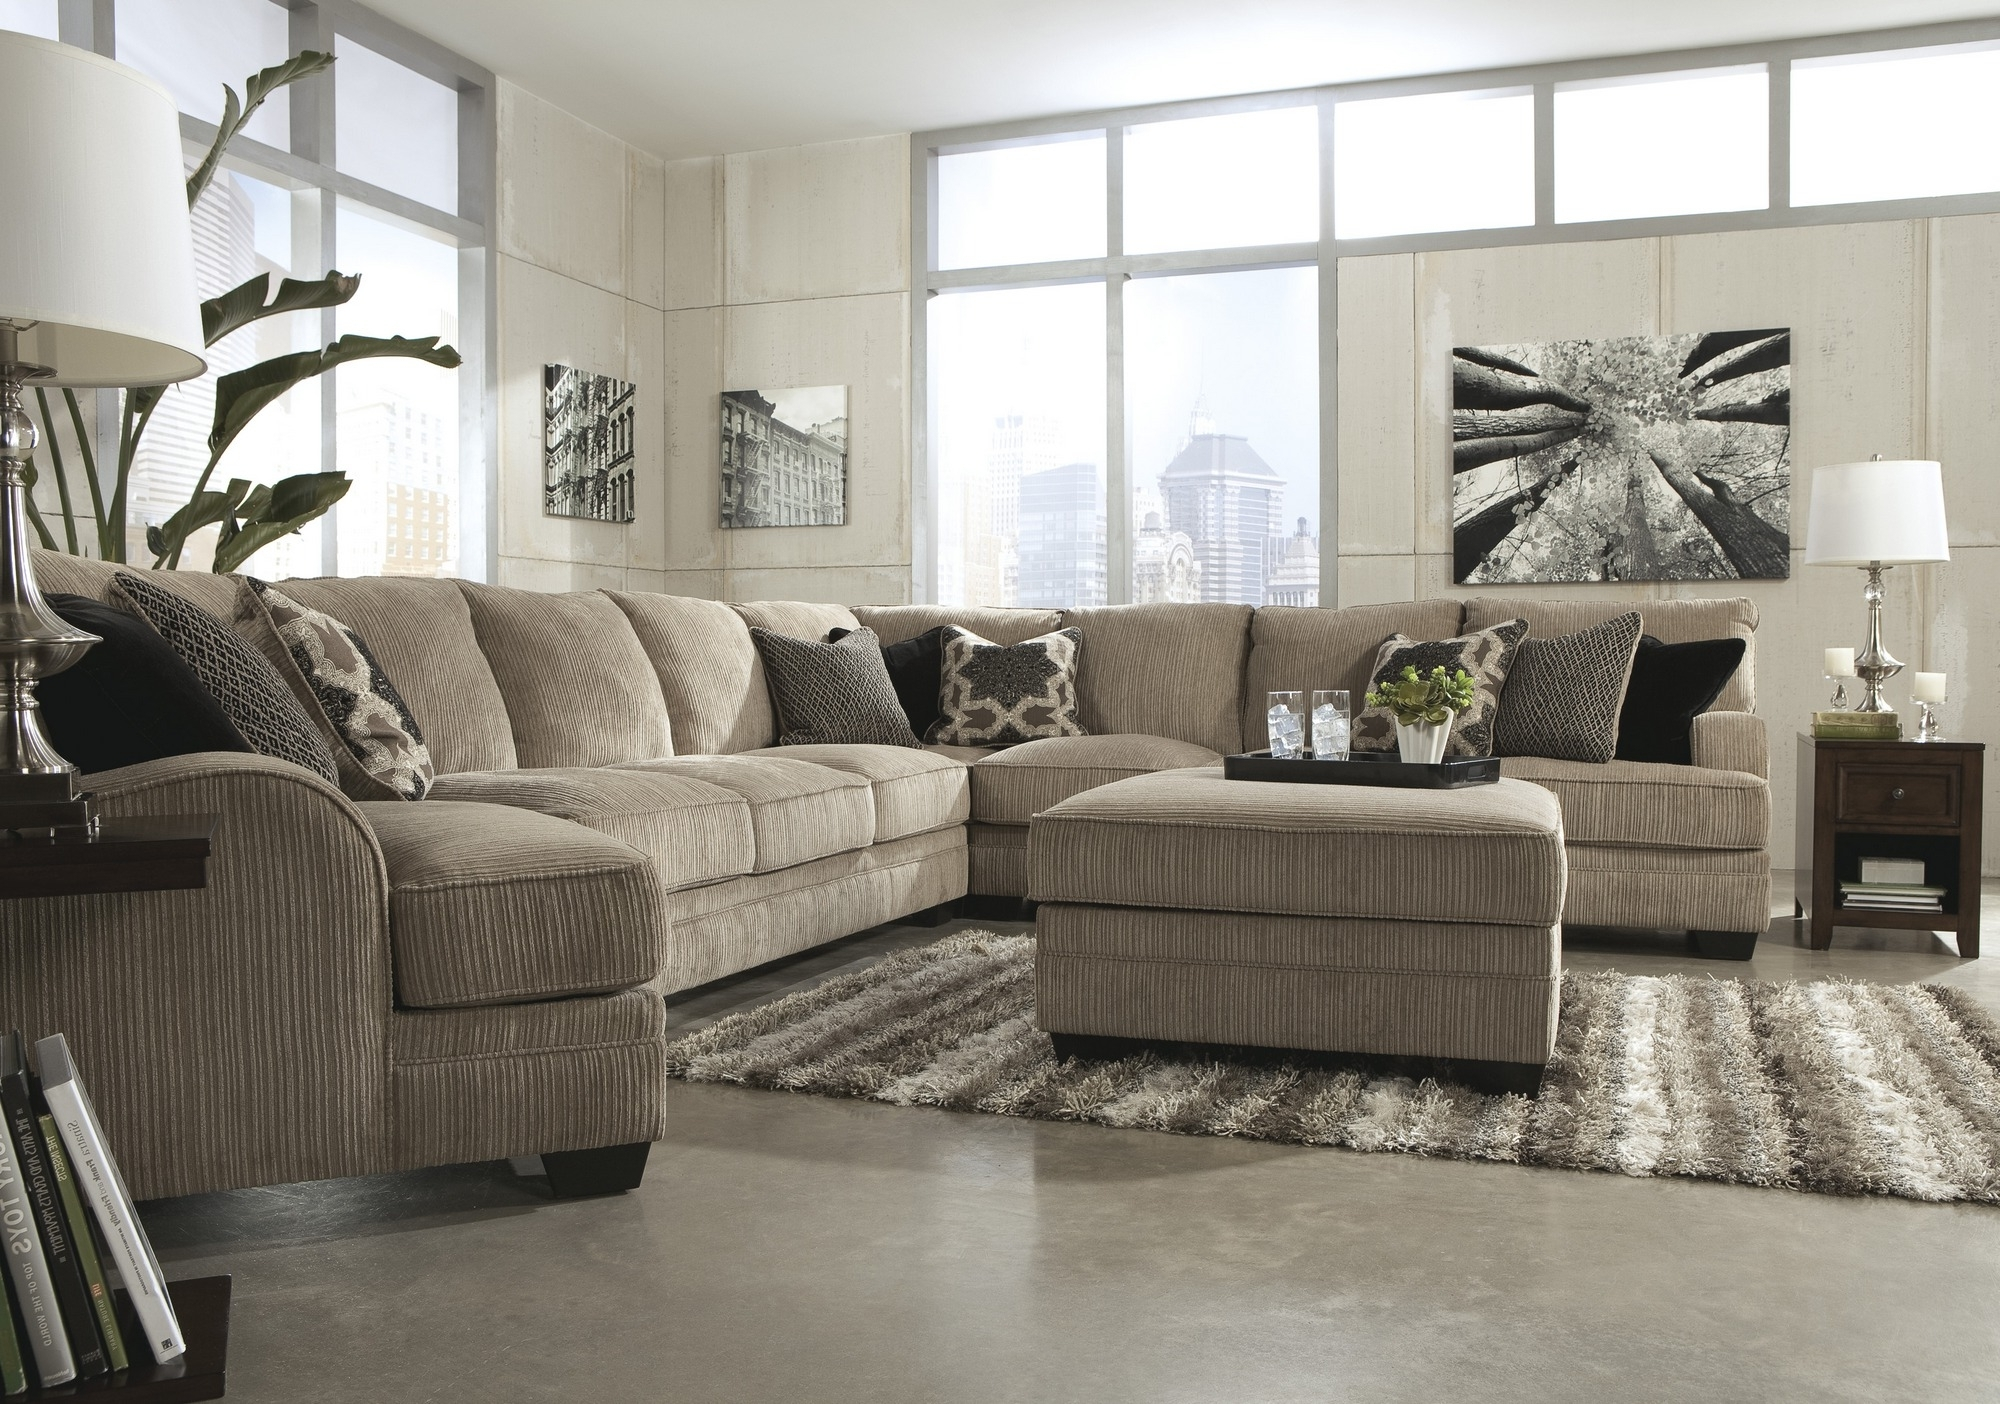 Sofas With Oversized Pillows Throughout Most Current Pale Grey Microfiber Sectional Couch Plus Accent Pillows And (View 14 of 20)